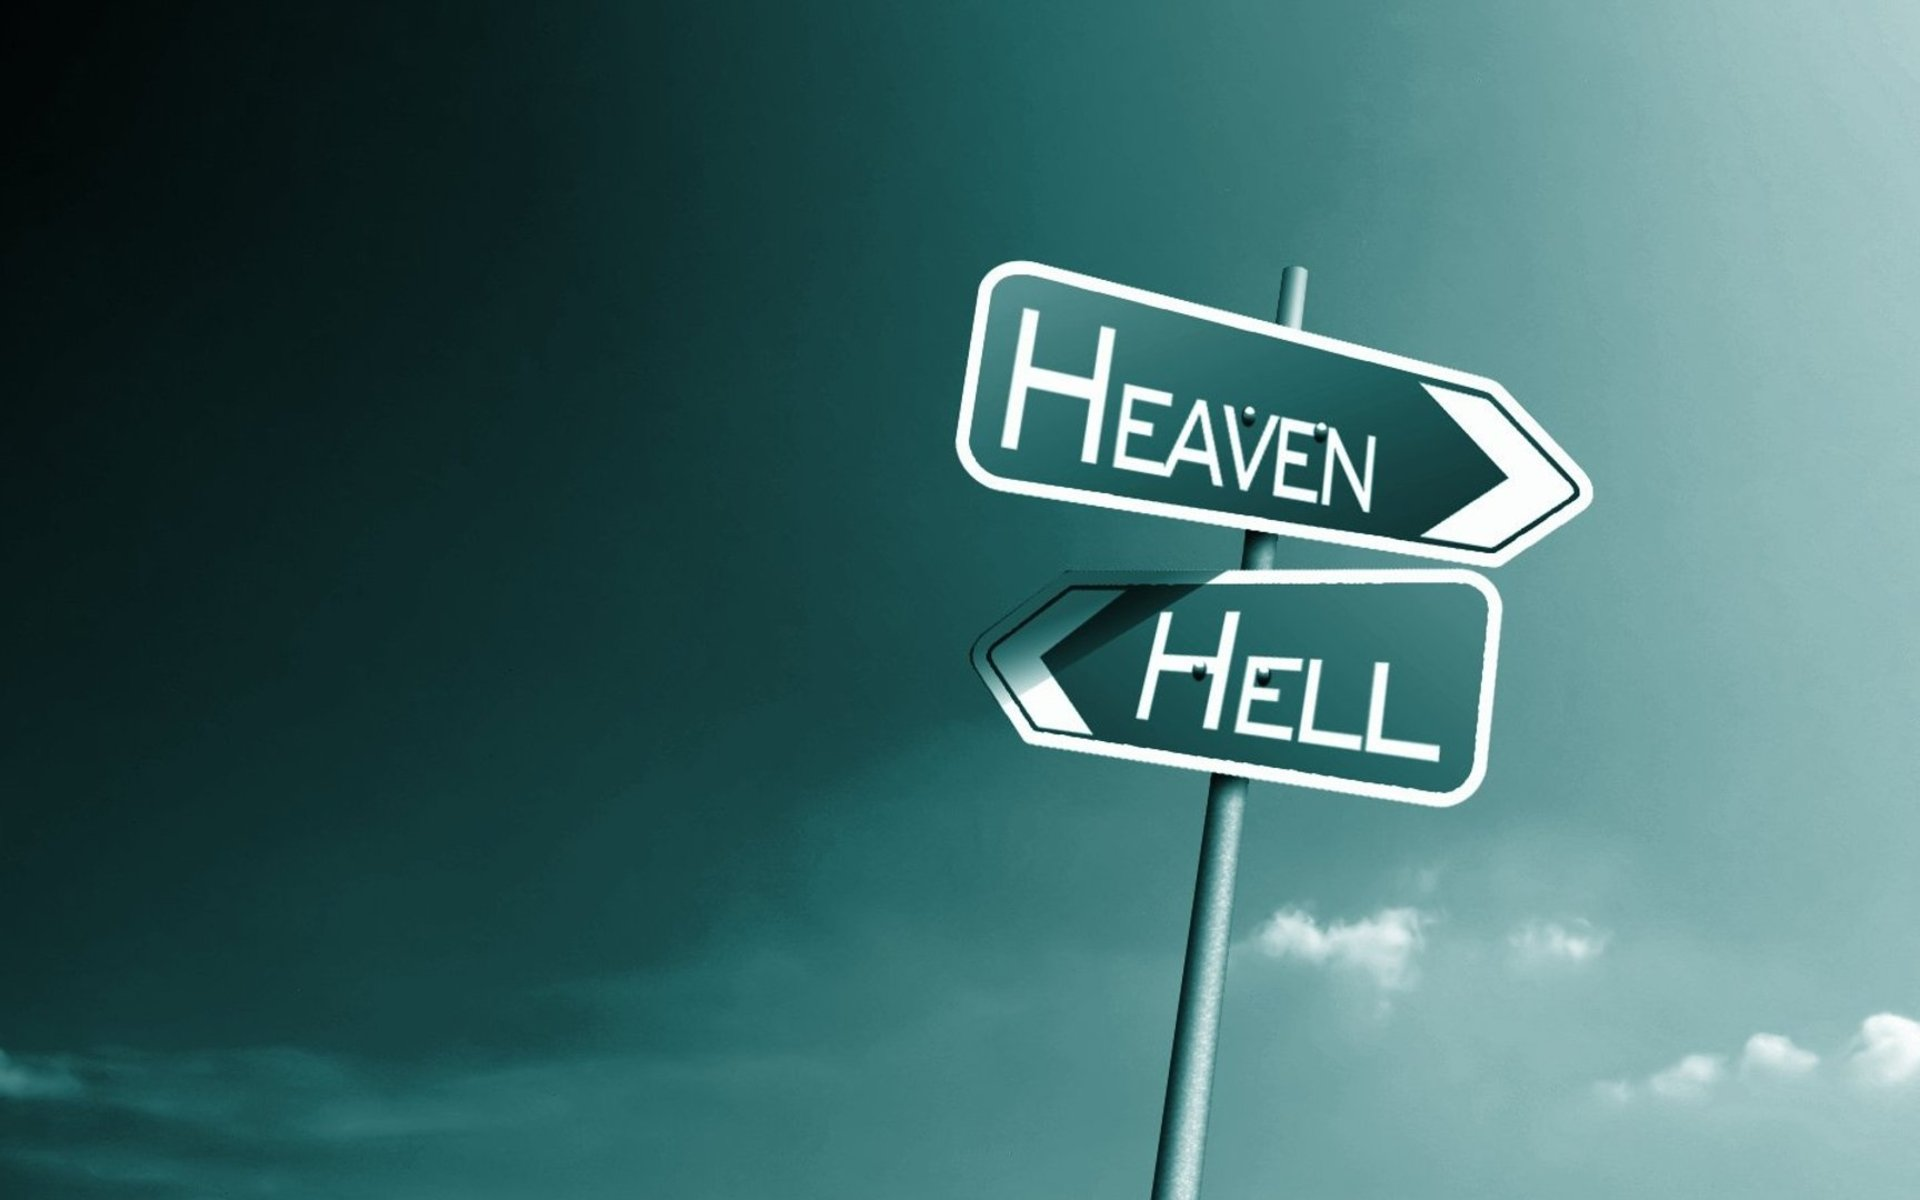 Short story: Heaven or Hell?